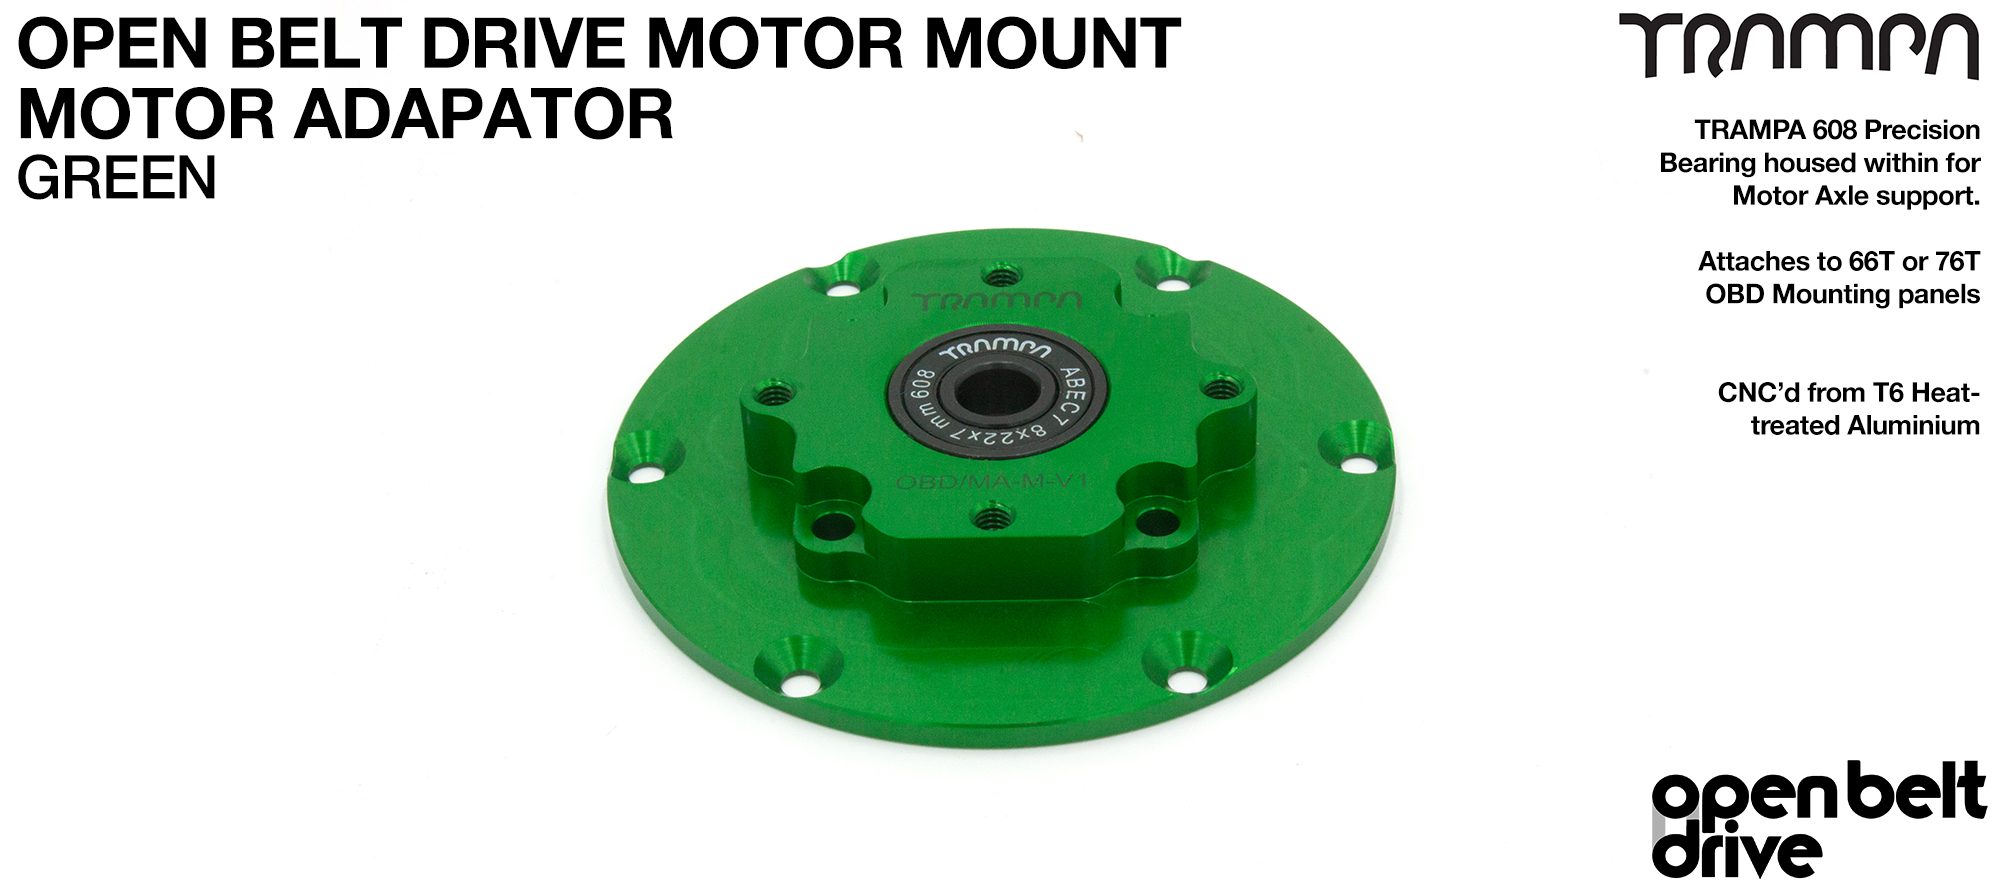 GREEN OBD Motor Adaptor with Housed Bearing